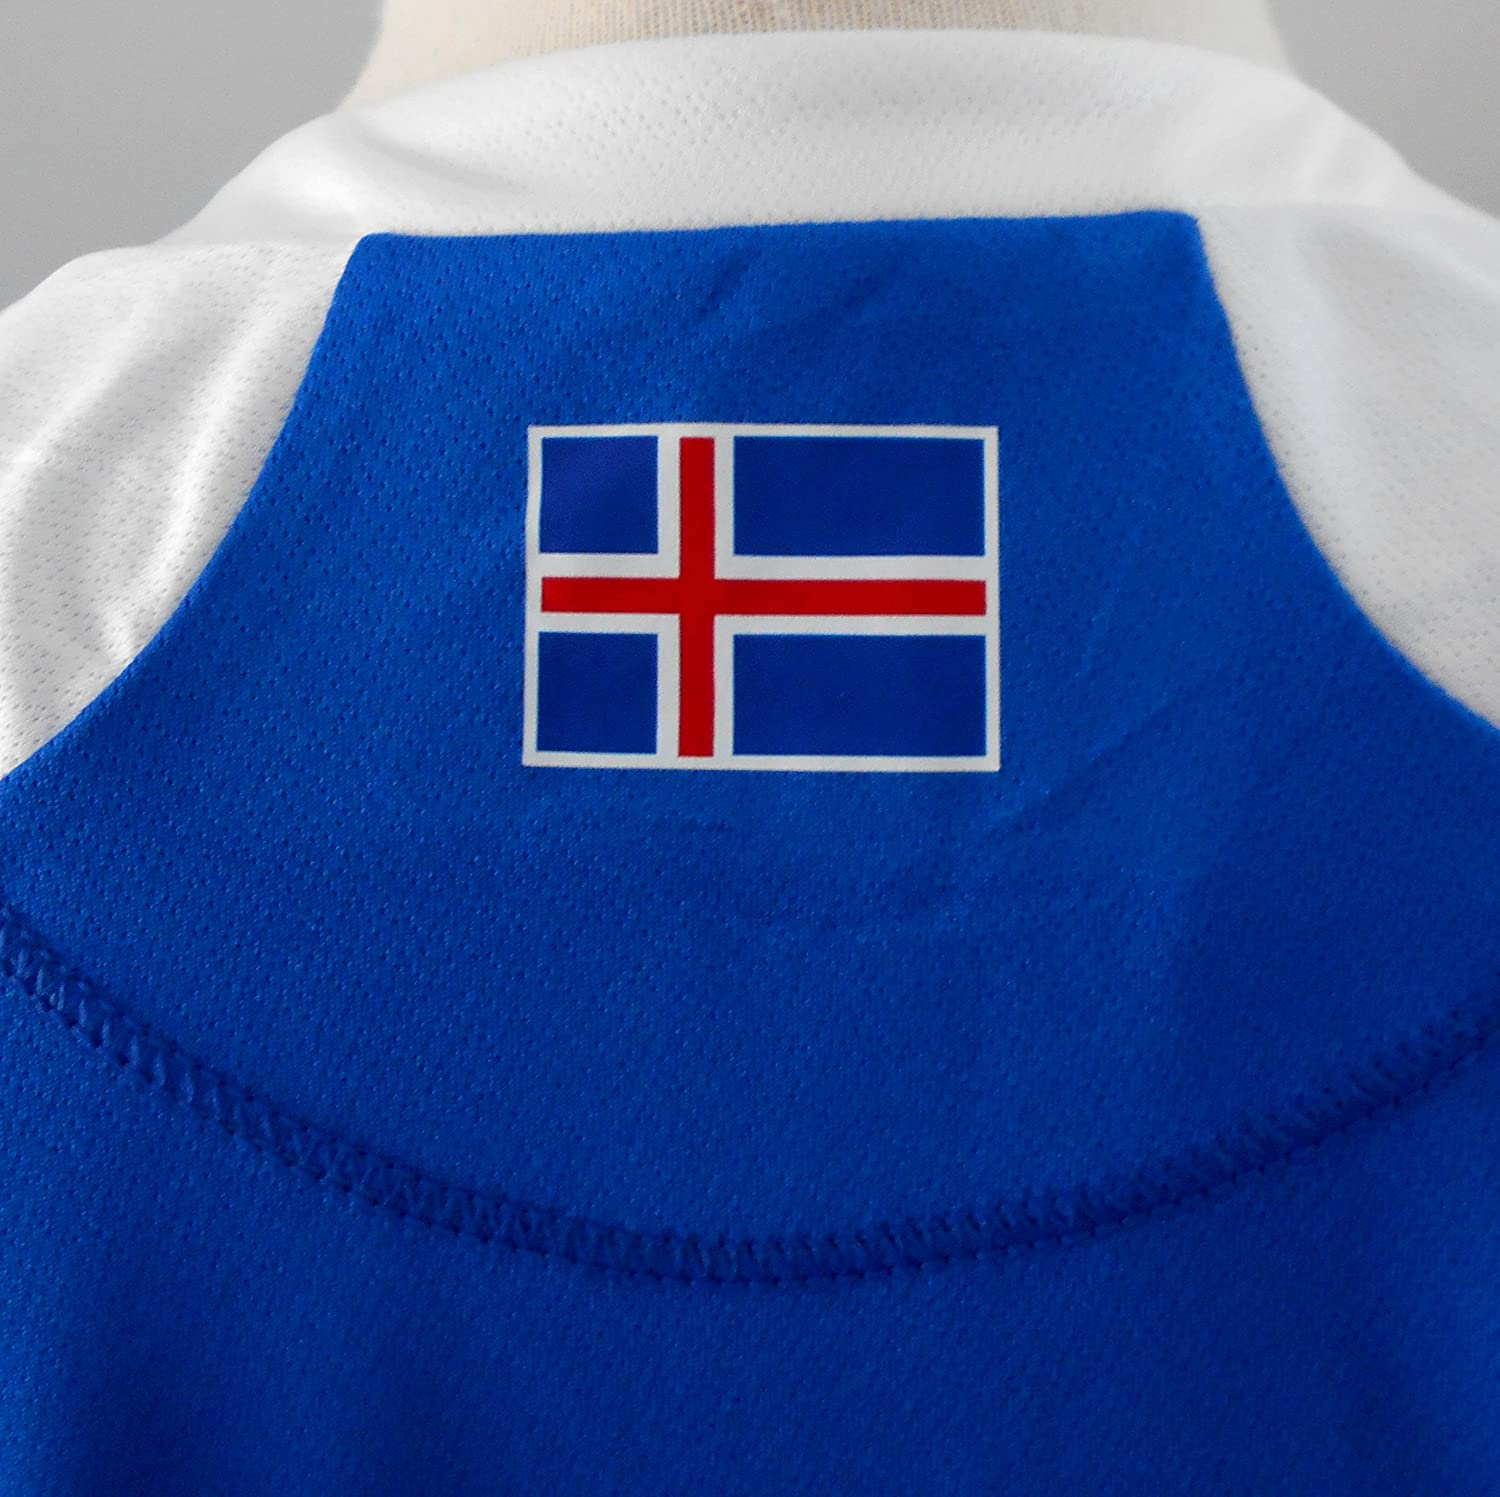 a7f6f5229 Errea Iceland Official World Cup 2018 Men's Home Football Shirt- Small:  Amazon.co.uk: Sports & Outdoors